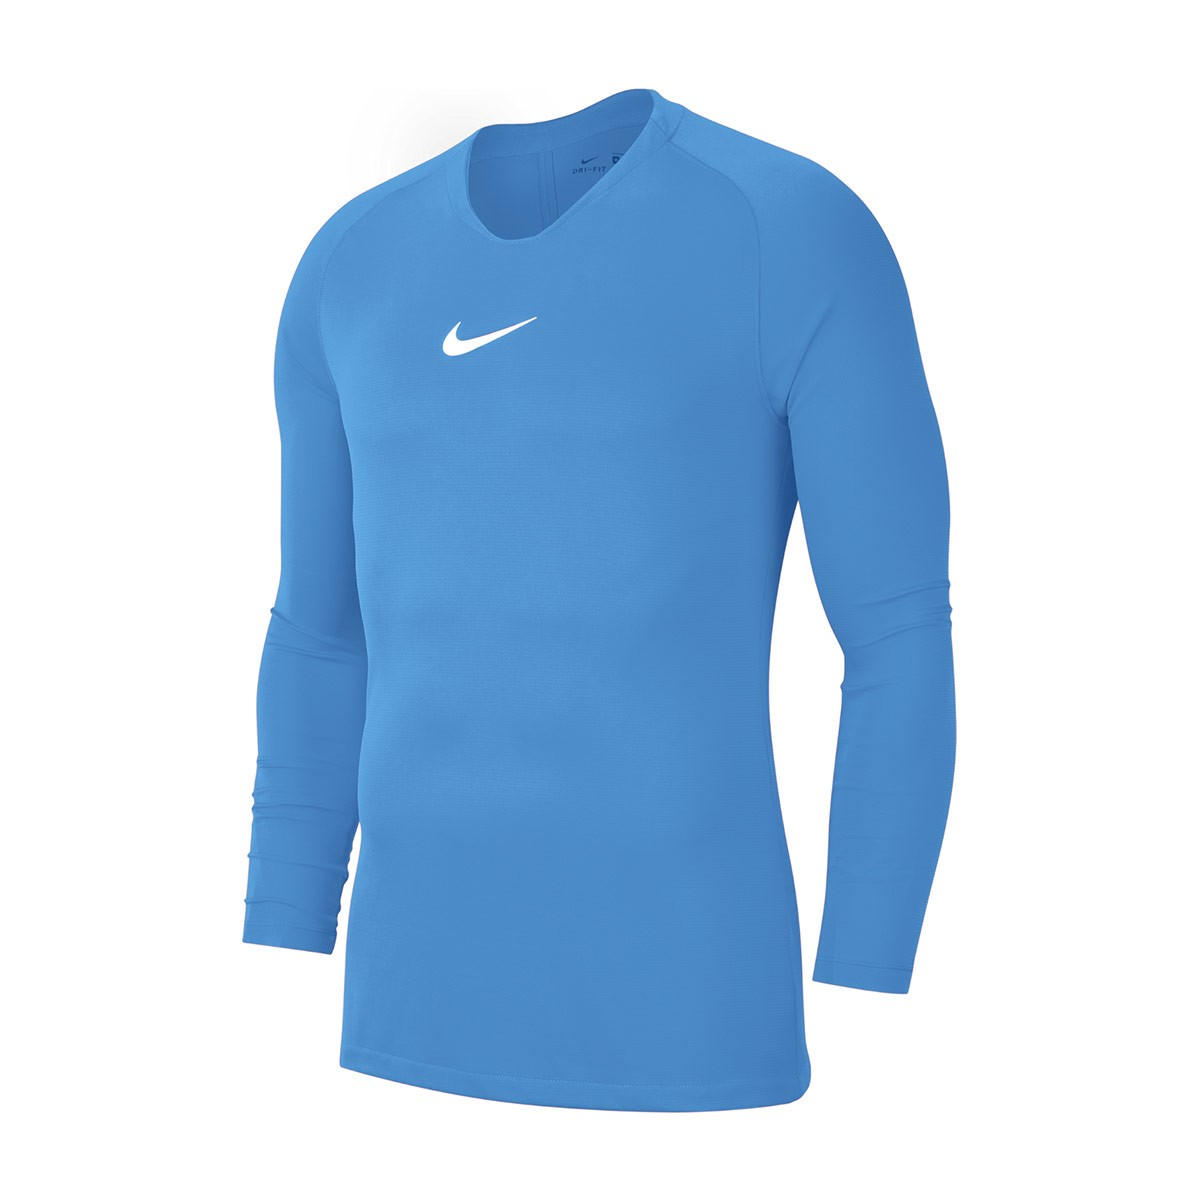 5ffcd012f Jersey Nike Park First Layer m/l University blue - Tienda de fútbol Fútbol  Emotion